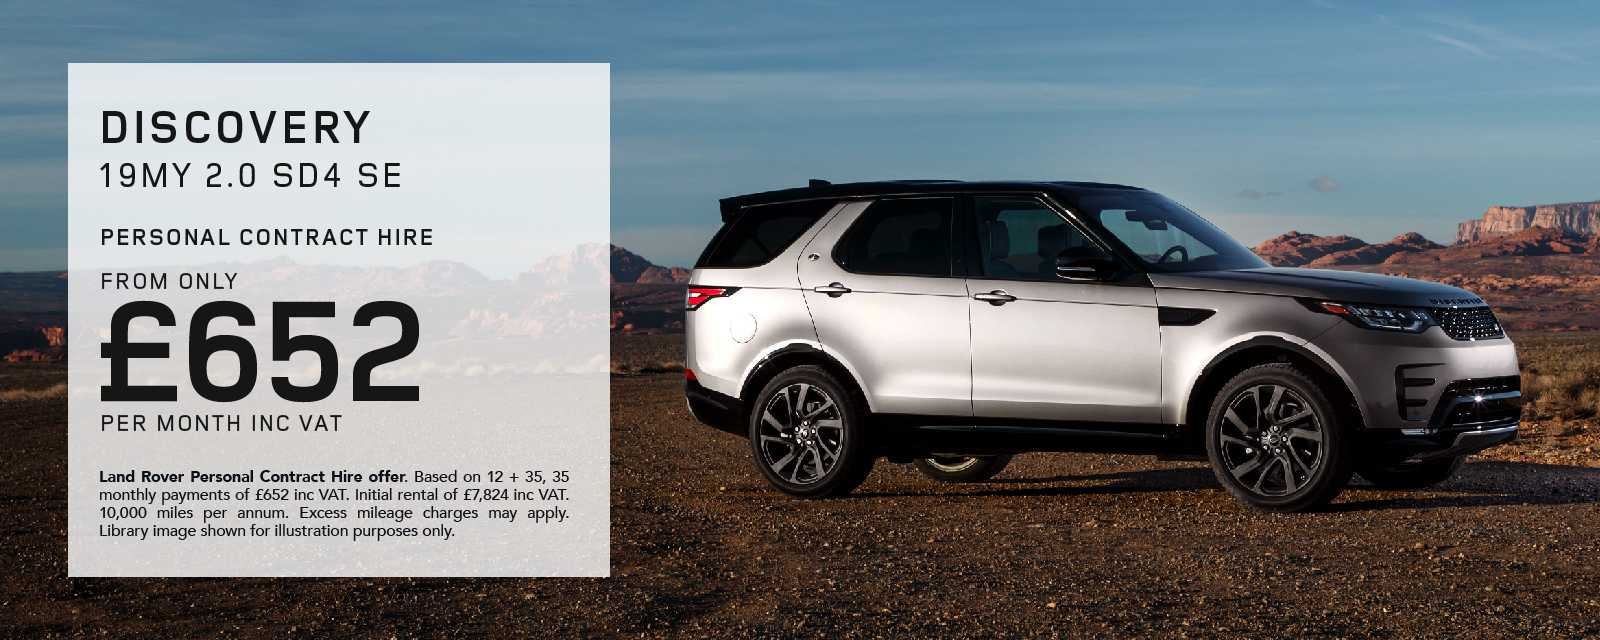 Land Rover Discovery Personal Contract Hire Offer